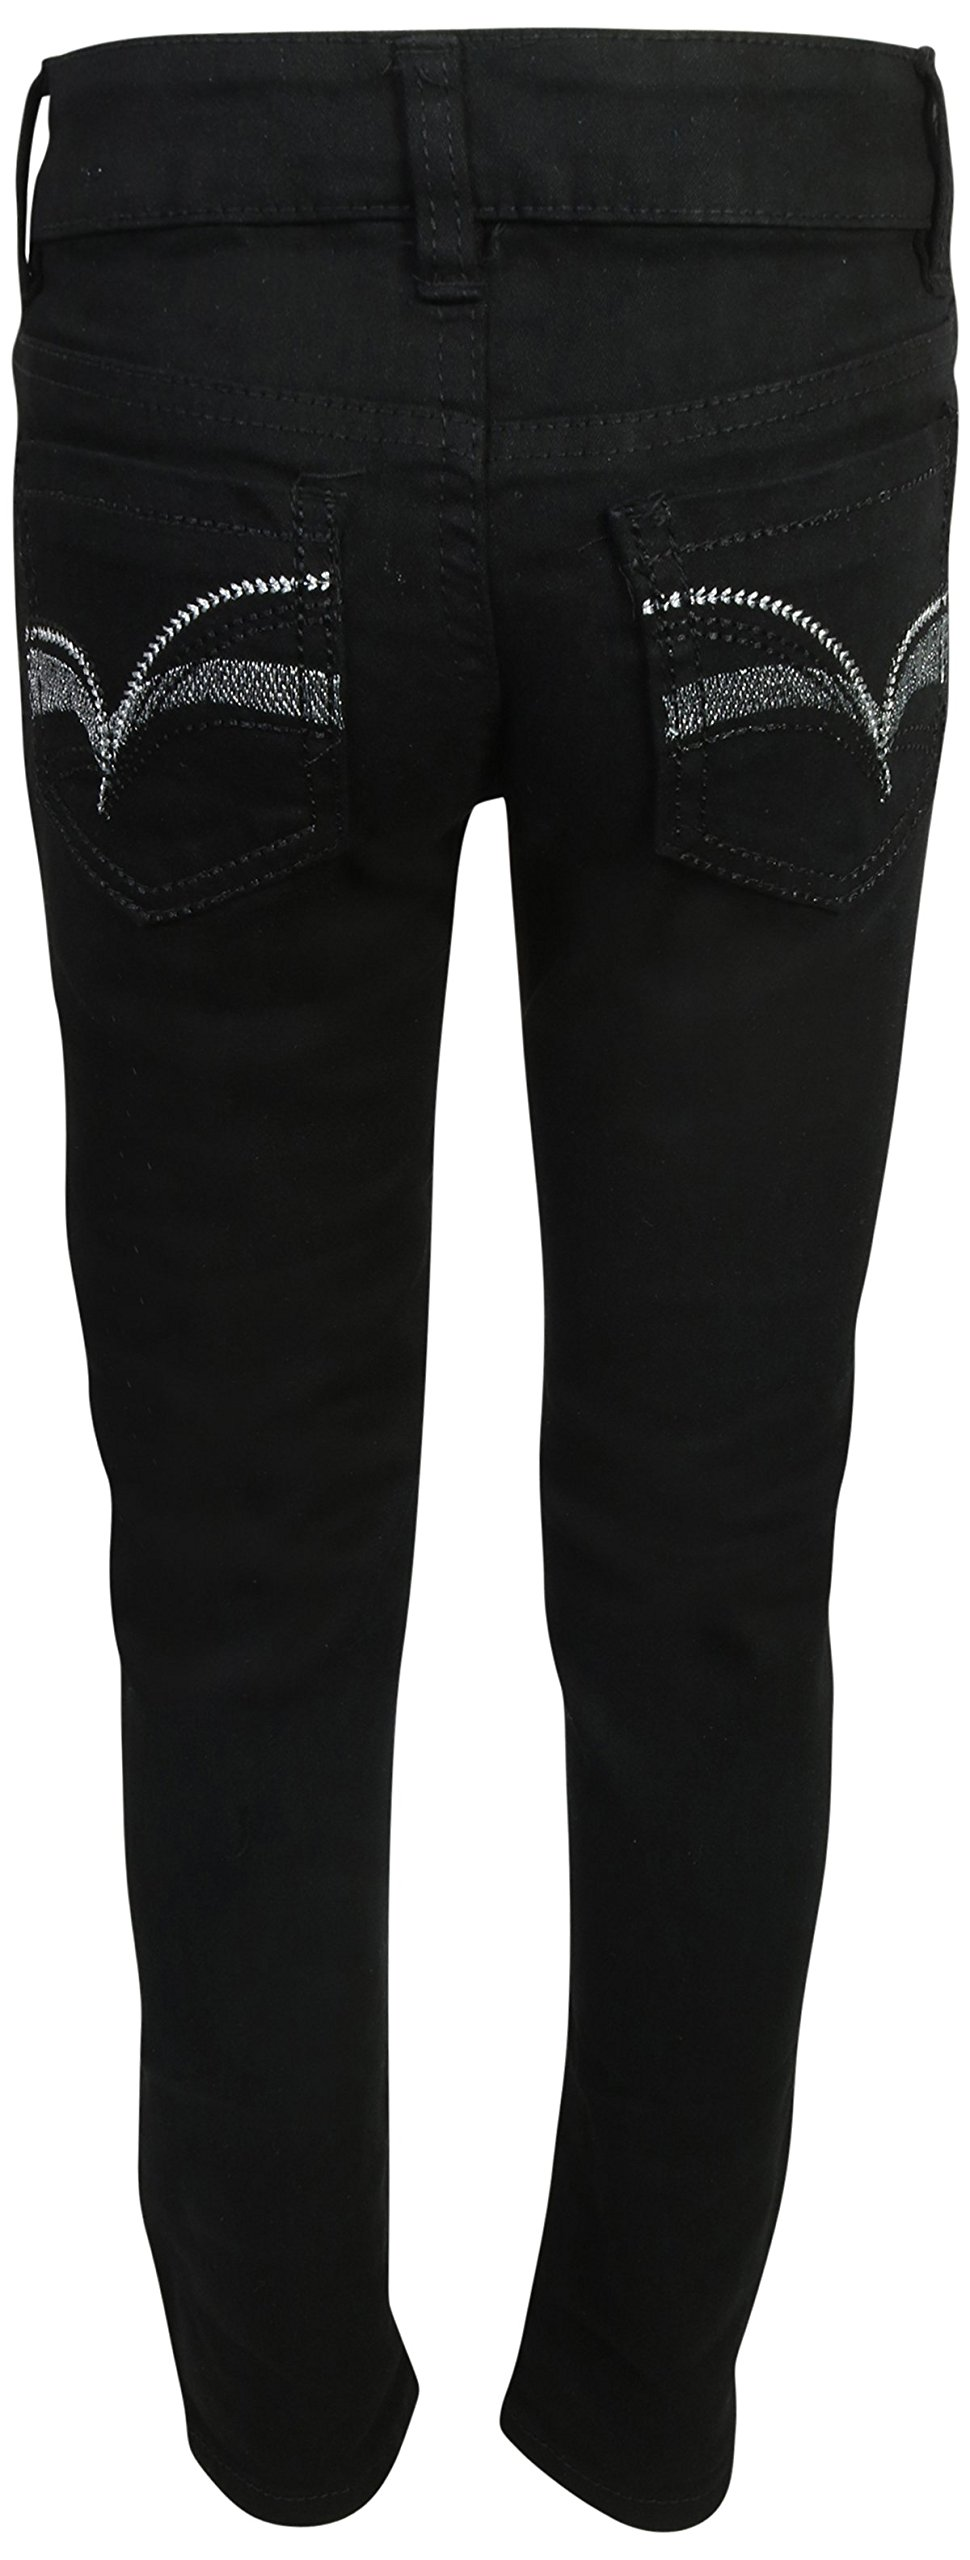 Real Love Girls Skinny Jeans, Black & Blue (2 Pack) Size 6 by Real Love (Image #3)